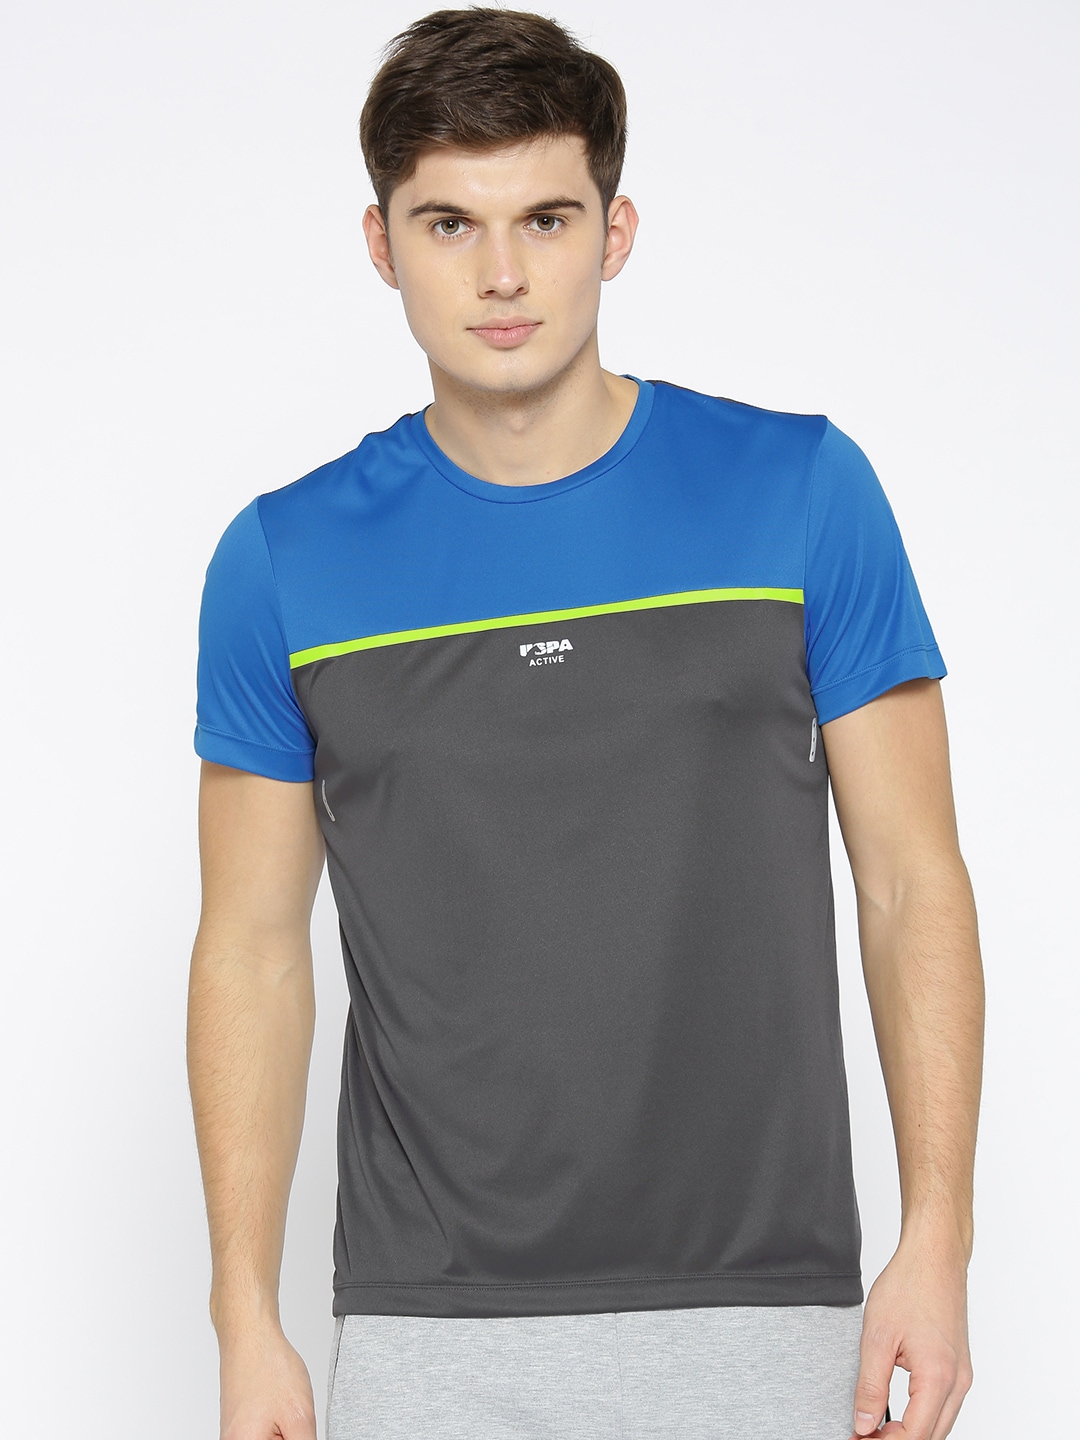 57facdcce Mens Clothing - Buy Clothing for Men Online in India | Myntra